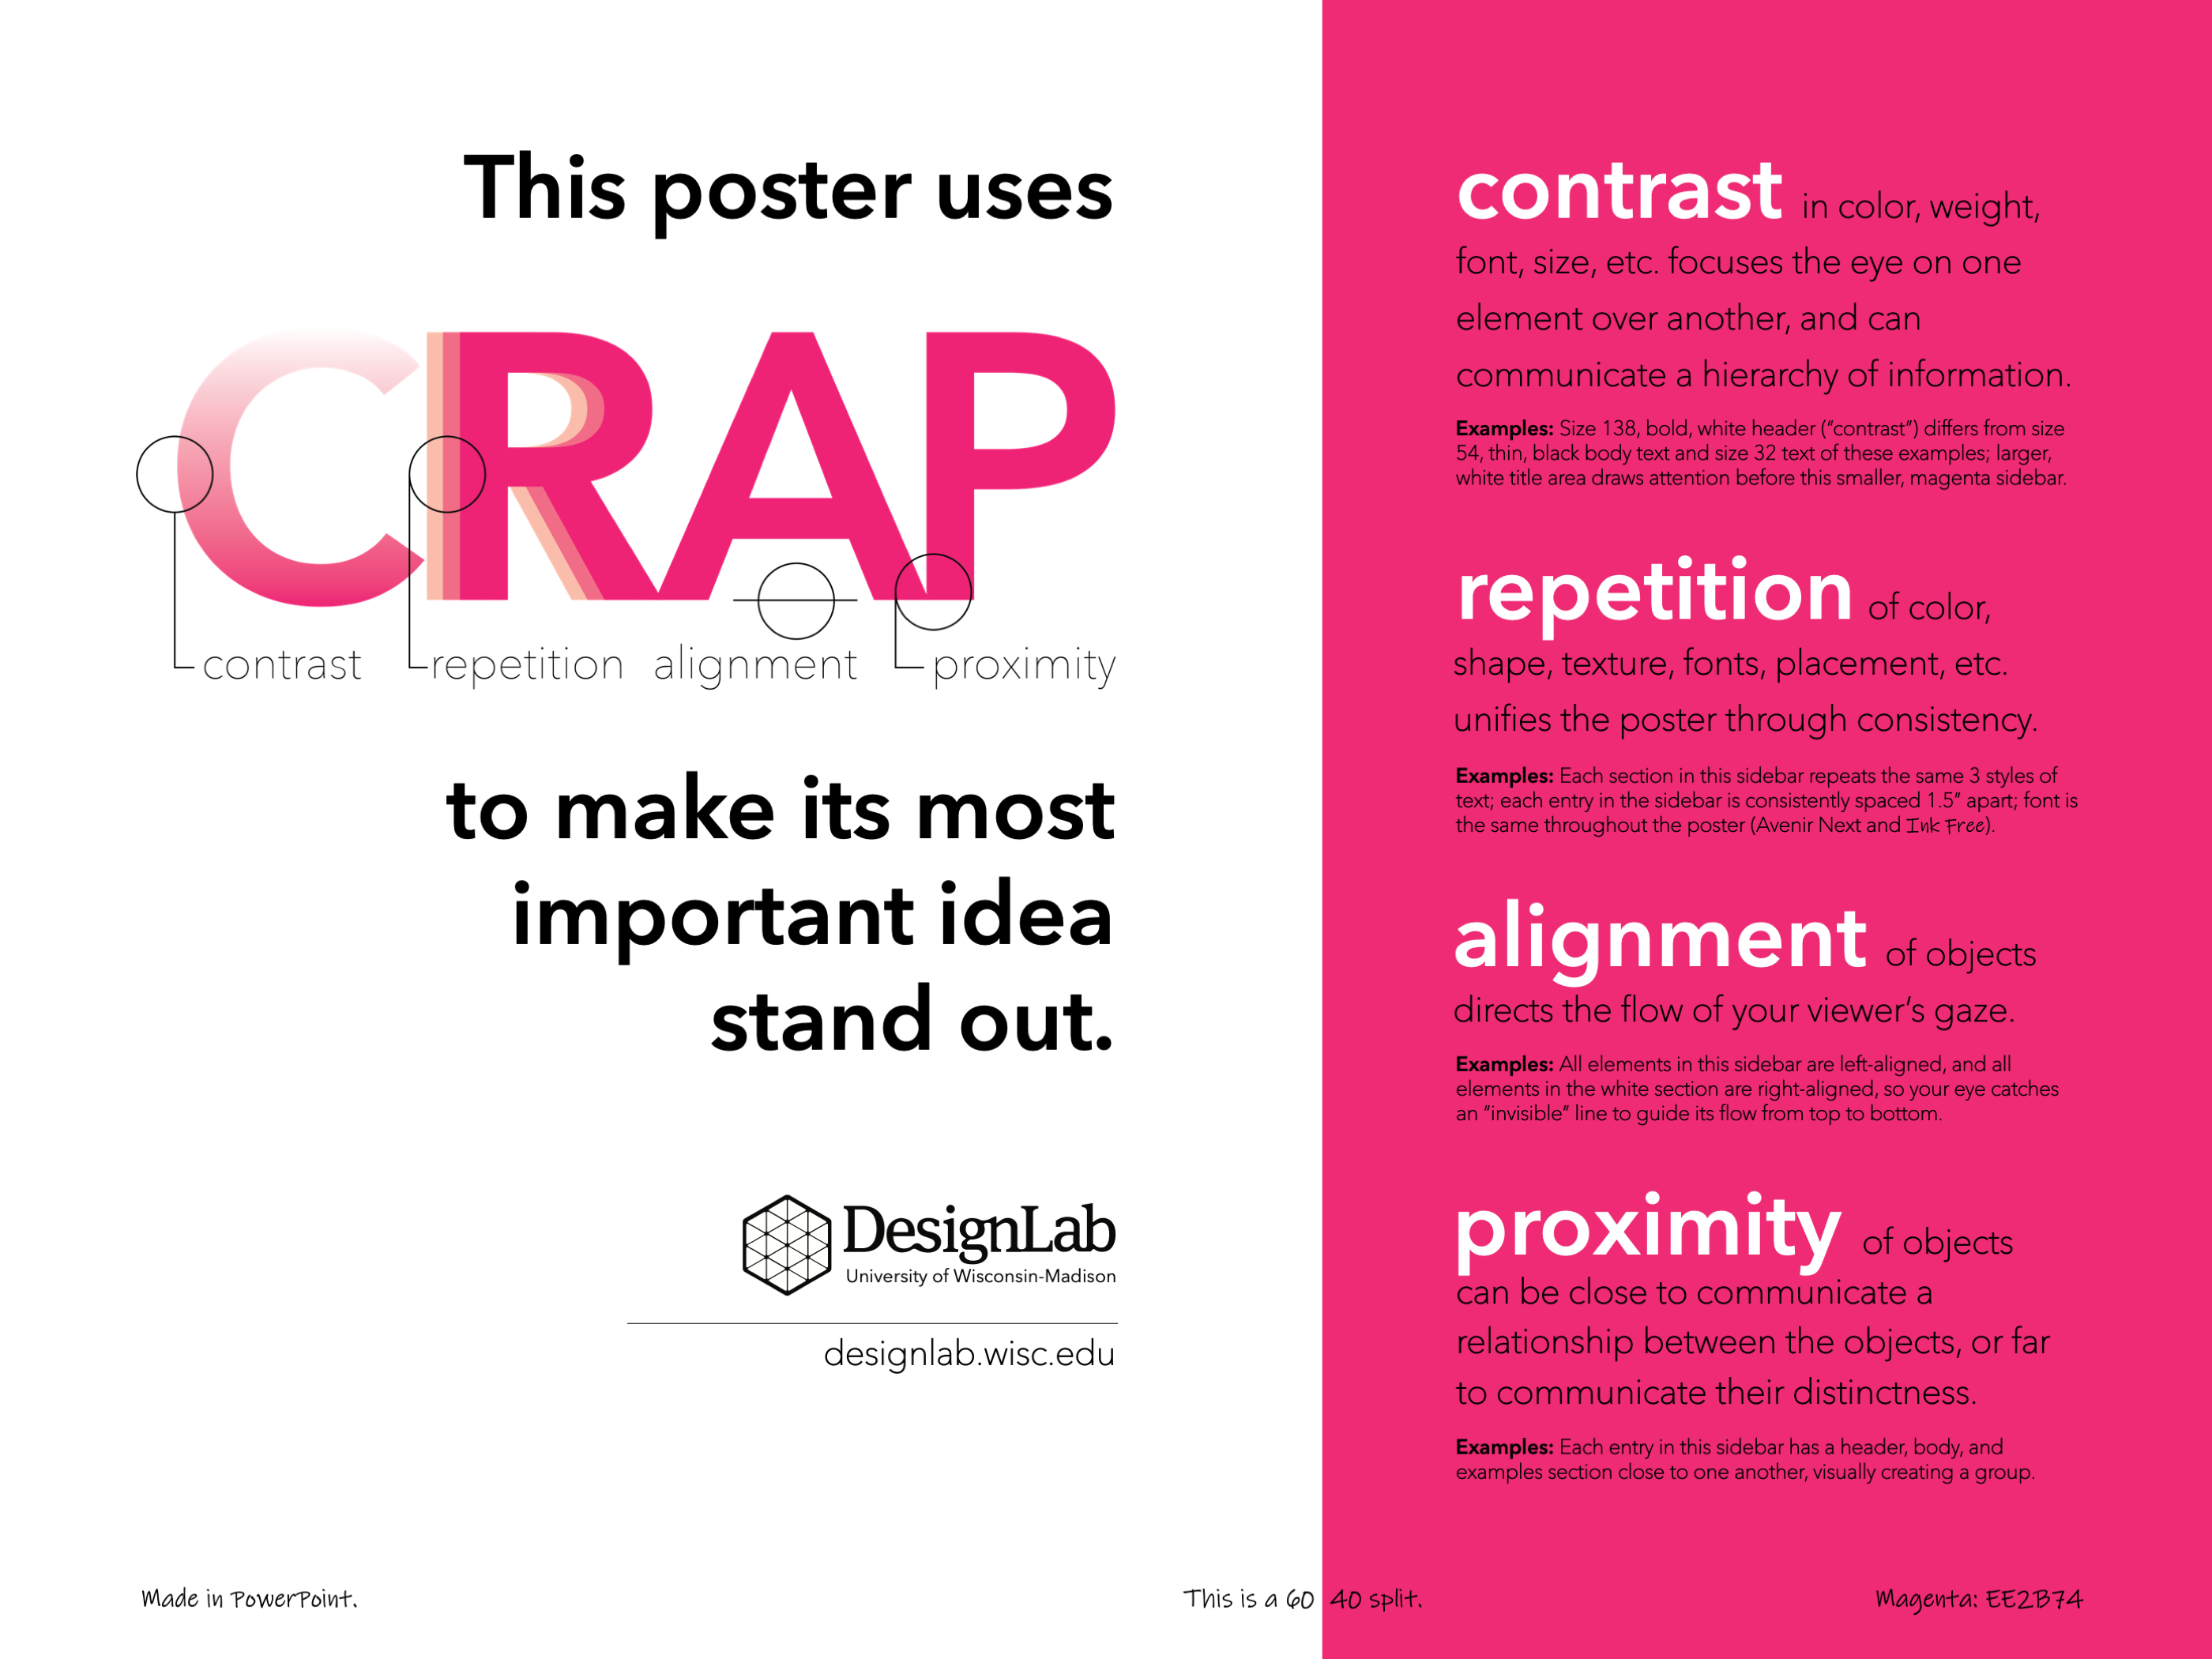 DesignLab's Creative Poster on Poster example with a 60/40 split of white and magenta and significantly less text than the standard posters. No images or charts on this poster. By clicking the image, you will be taken to the PDF version.